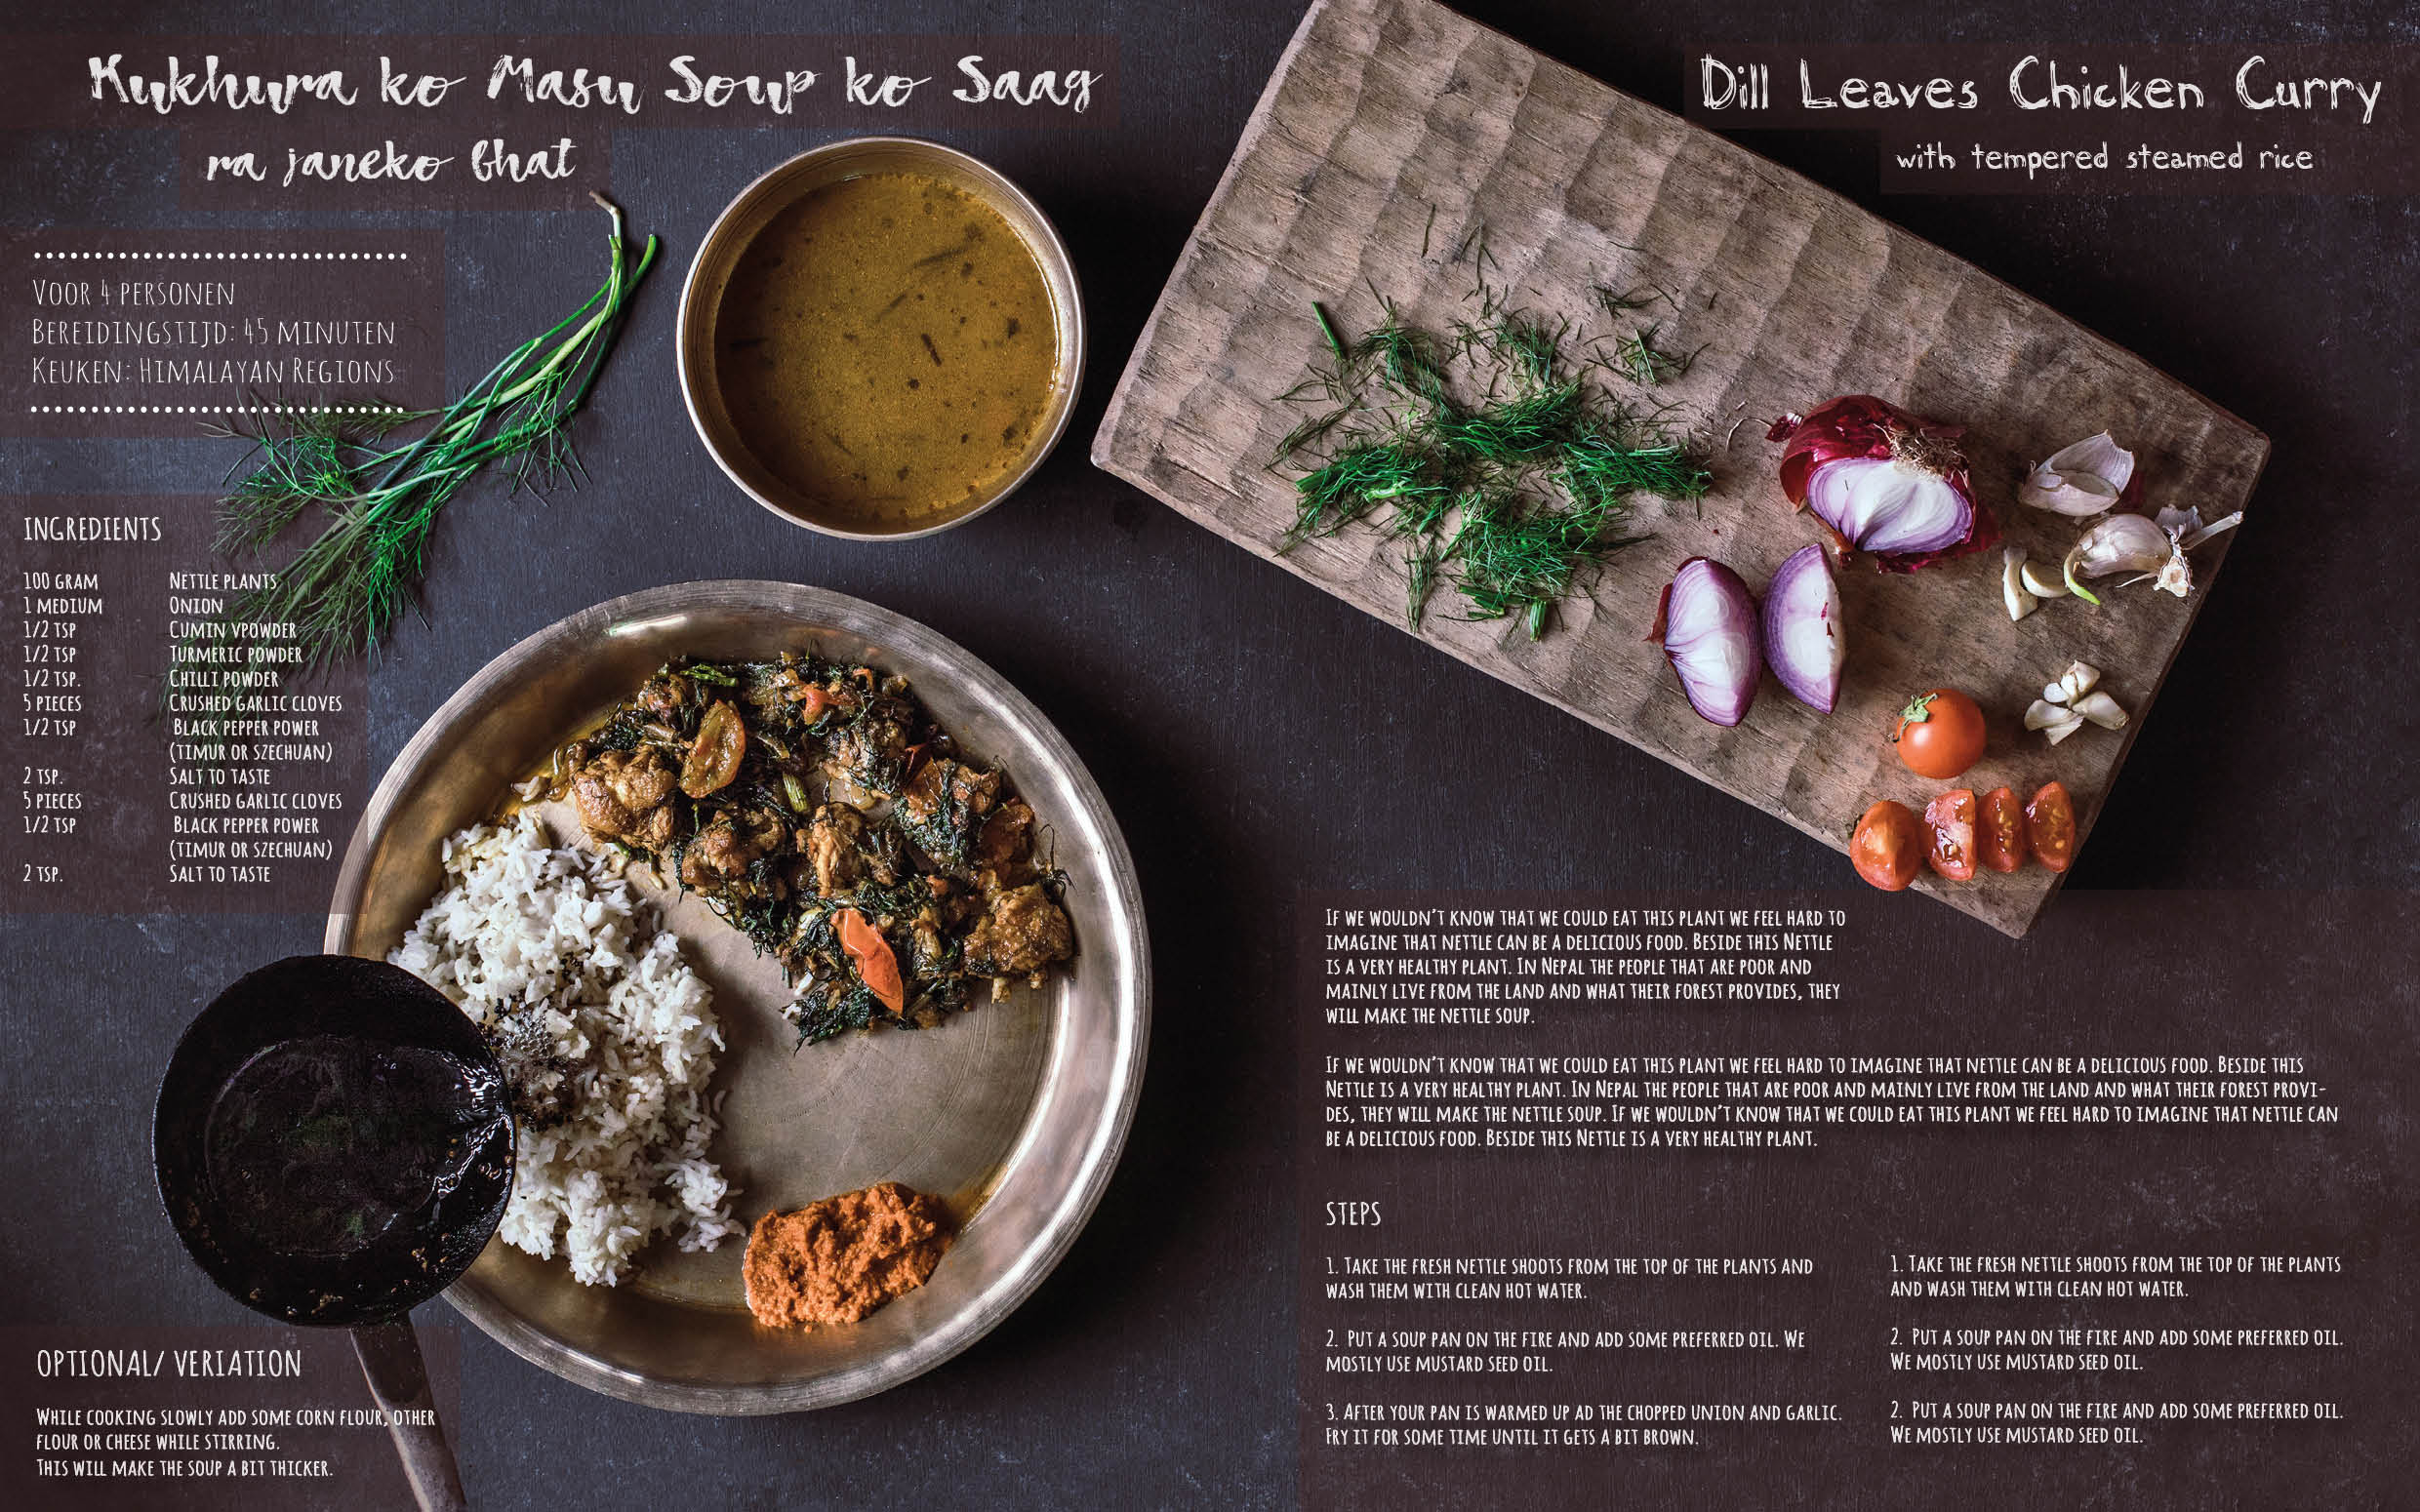 Flavours of Nepal - E-book 2018 - version 1.3-spices -1143.jpg